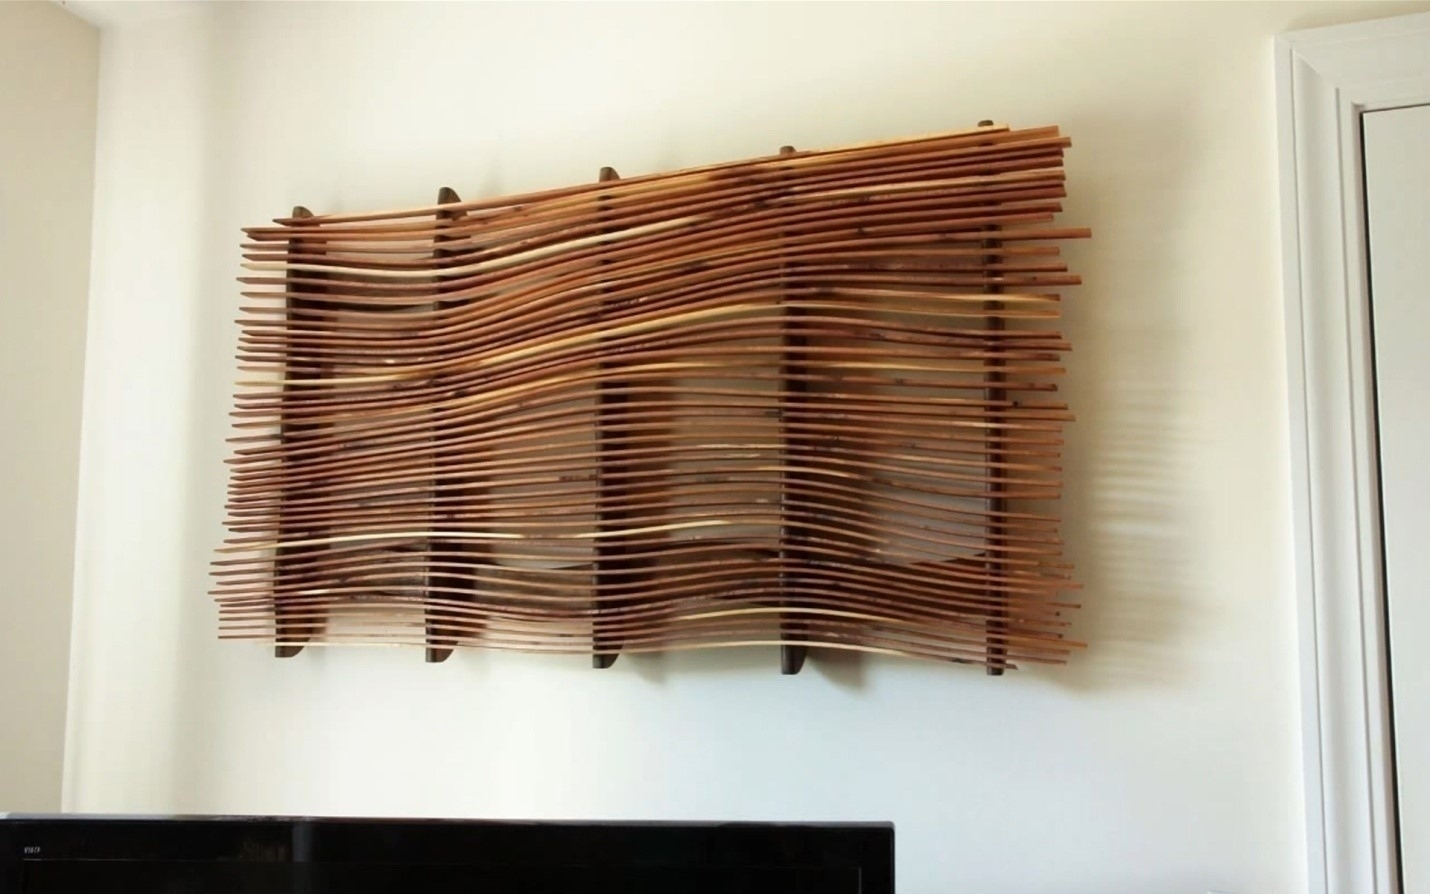 How To Make Wall Art From Scrap Wood | Diy Project – Cut The Wood For Most Popular Wood Wall Art Diy (View 7 of 15)